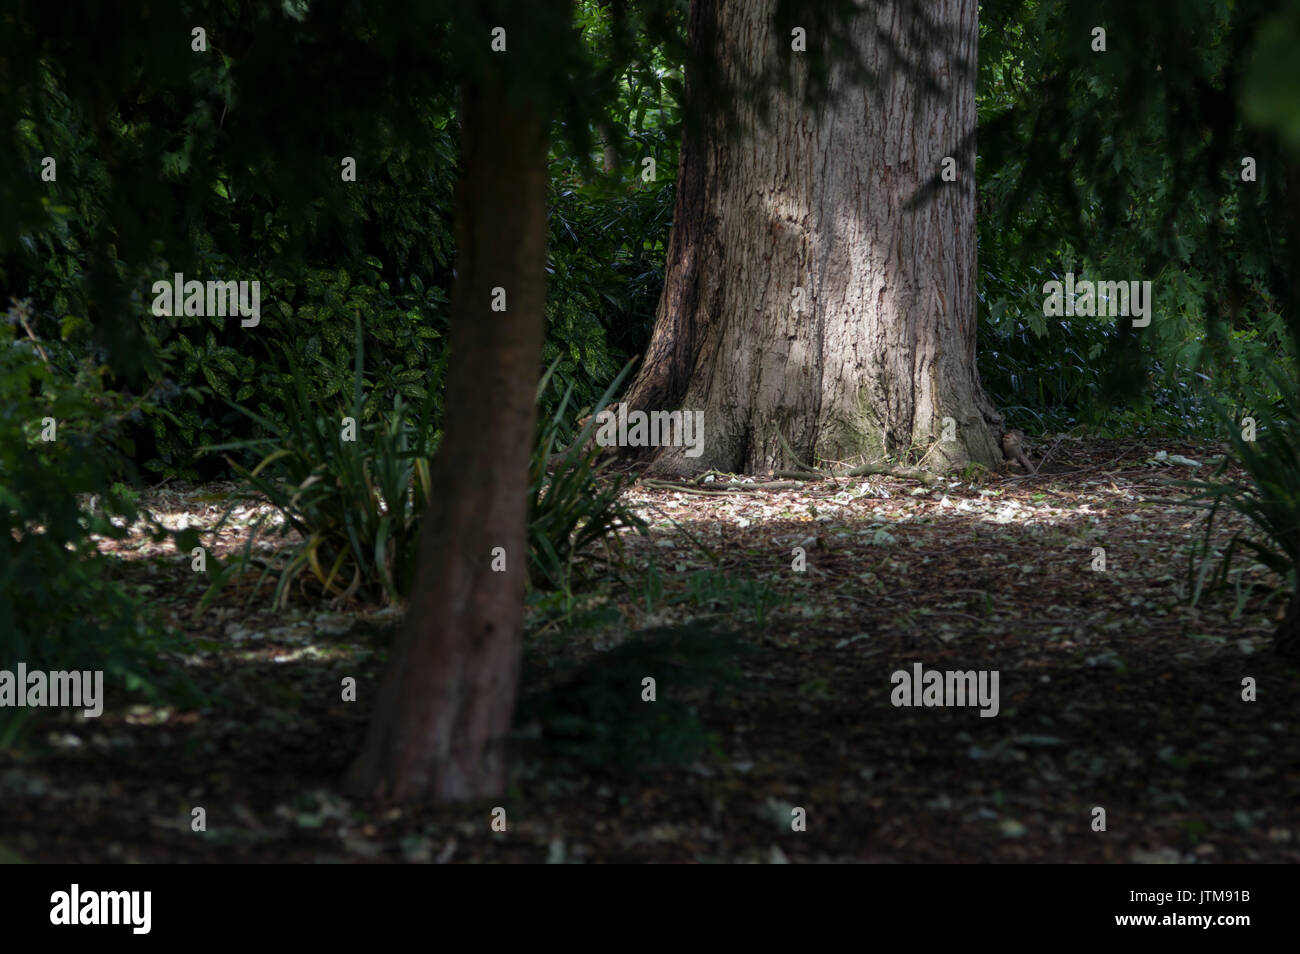 Dark and moody forest scene with dappled sunlight and shadows on trees and leaves in central England - Stock Image